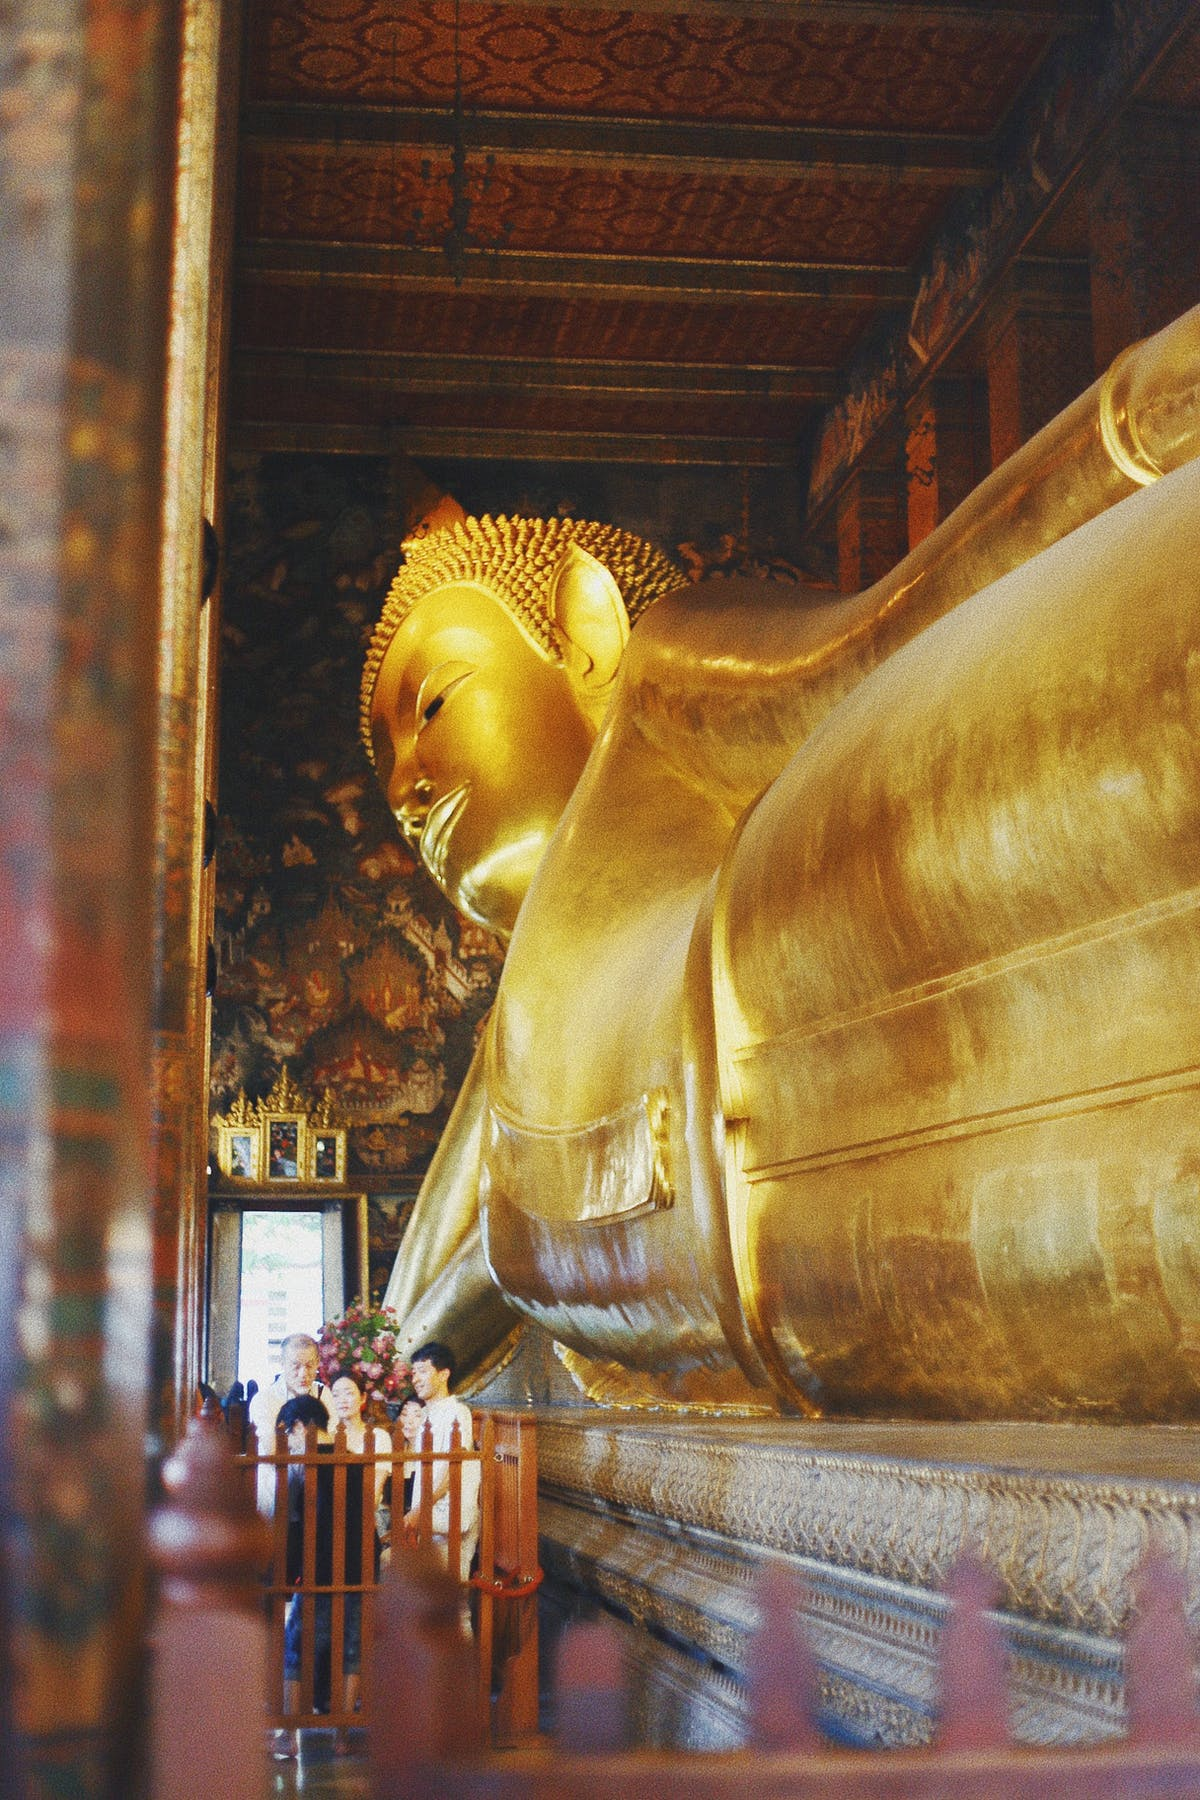 Lying Buddha in gold 45 m long 3/4 view -Photo by Taylor Simpson on Unsplash